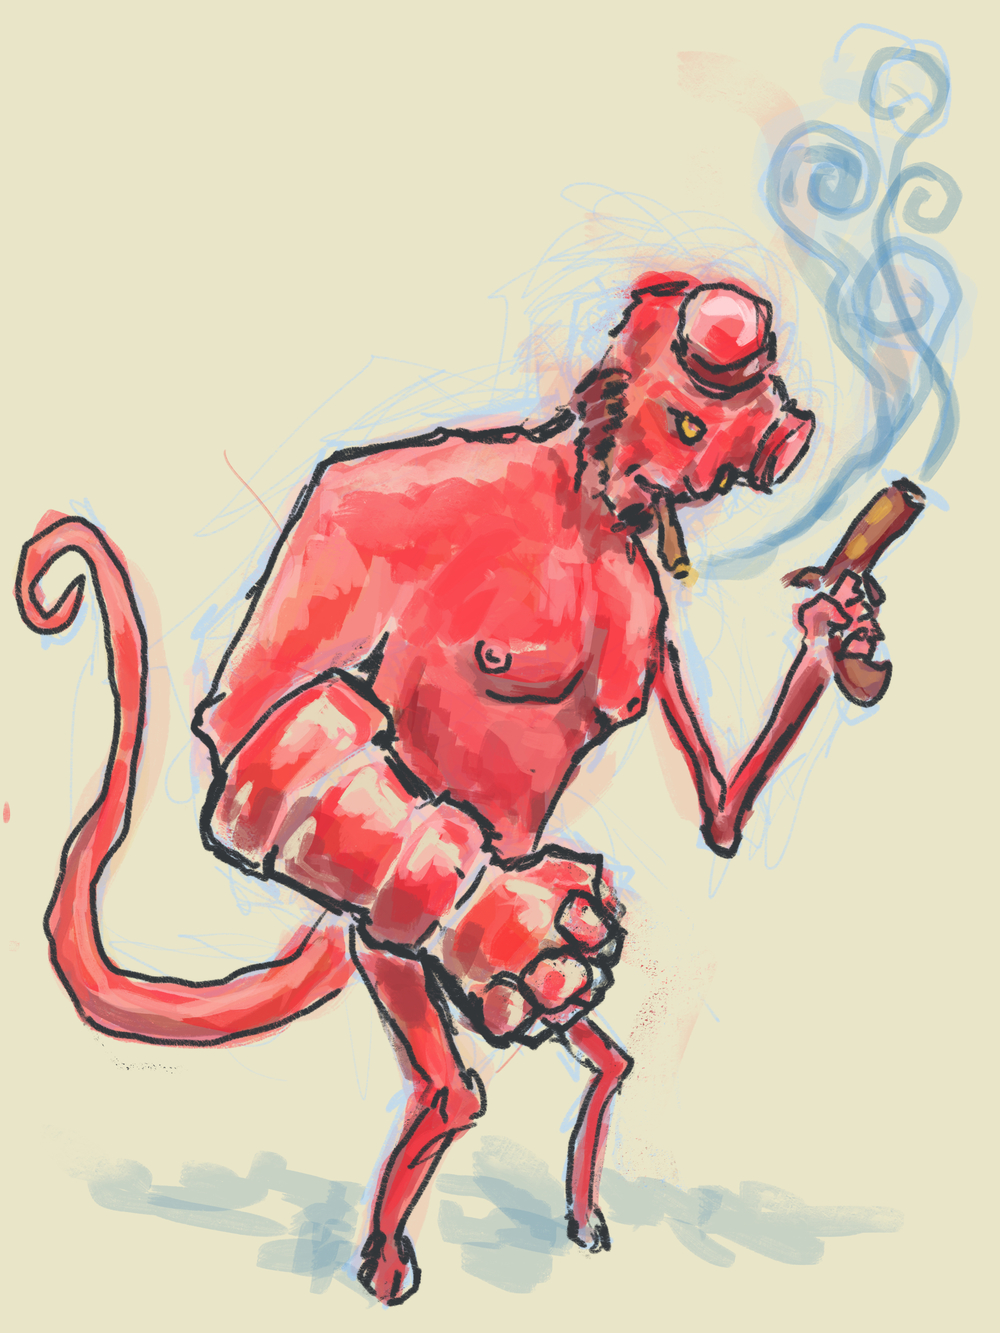 hellboy_procreate.jpg